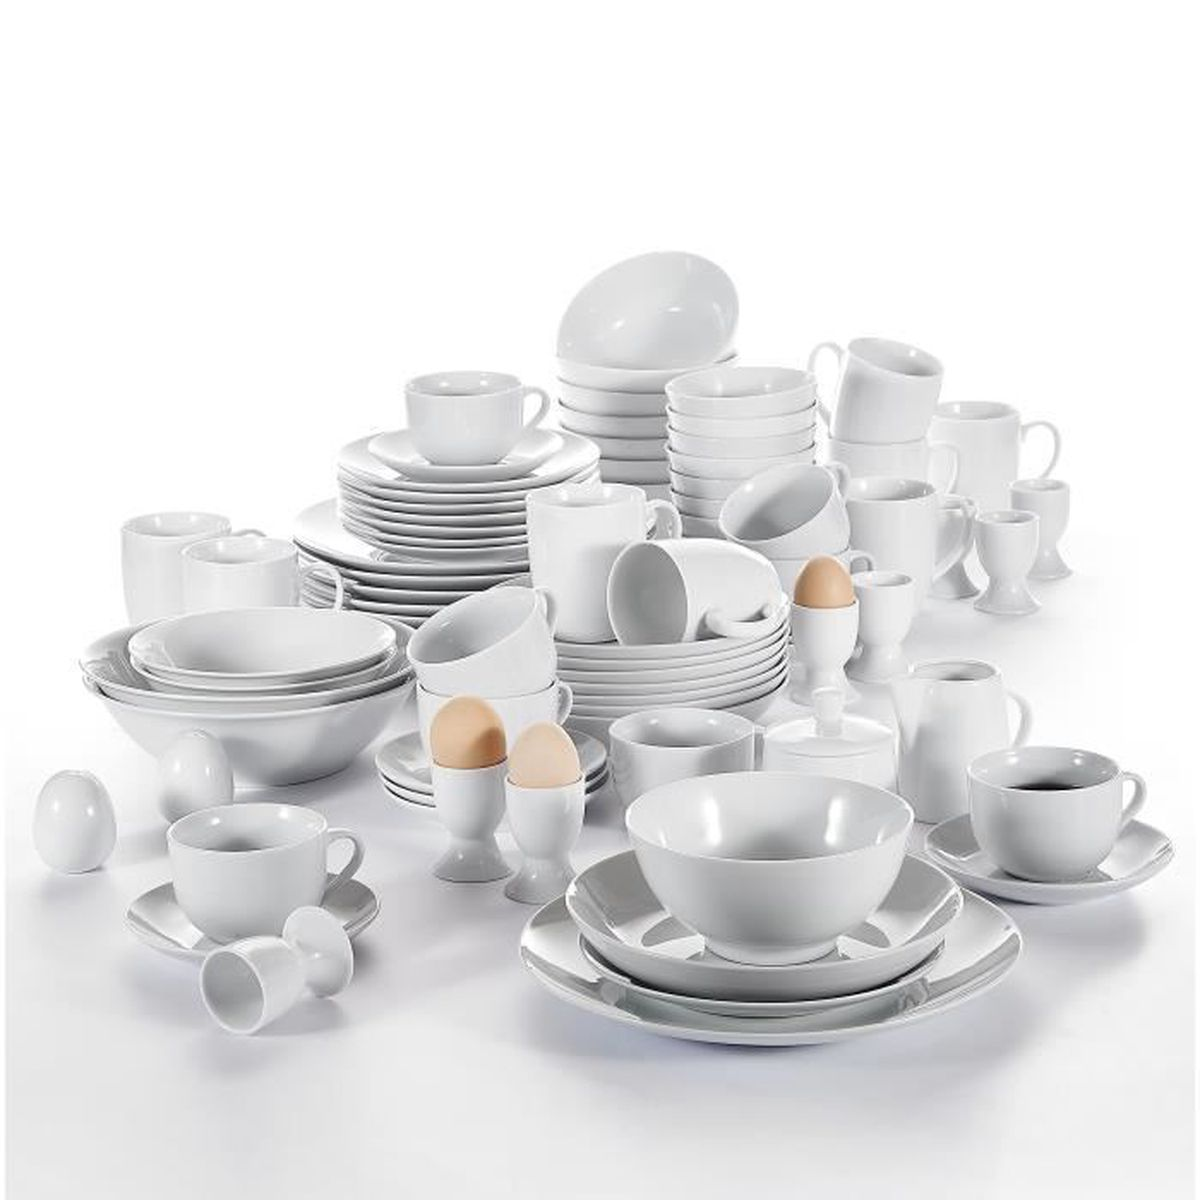 80pcs service de table porcelaine assiette bol saladier coquetier tasses mugs sucrier pot lait. Black Bedroom Furniture Sets. Home Design Ideas